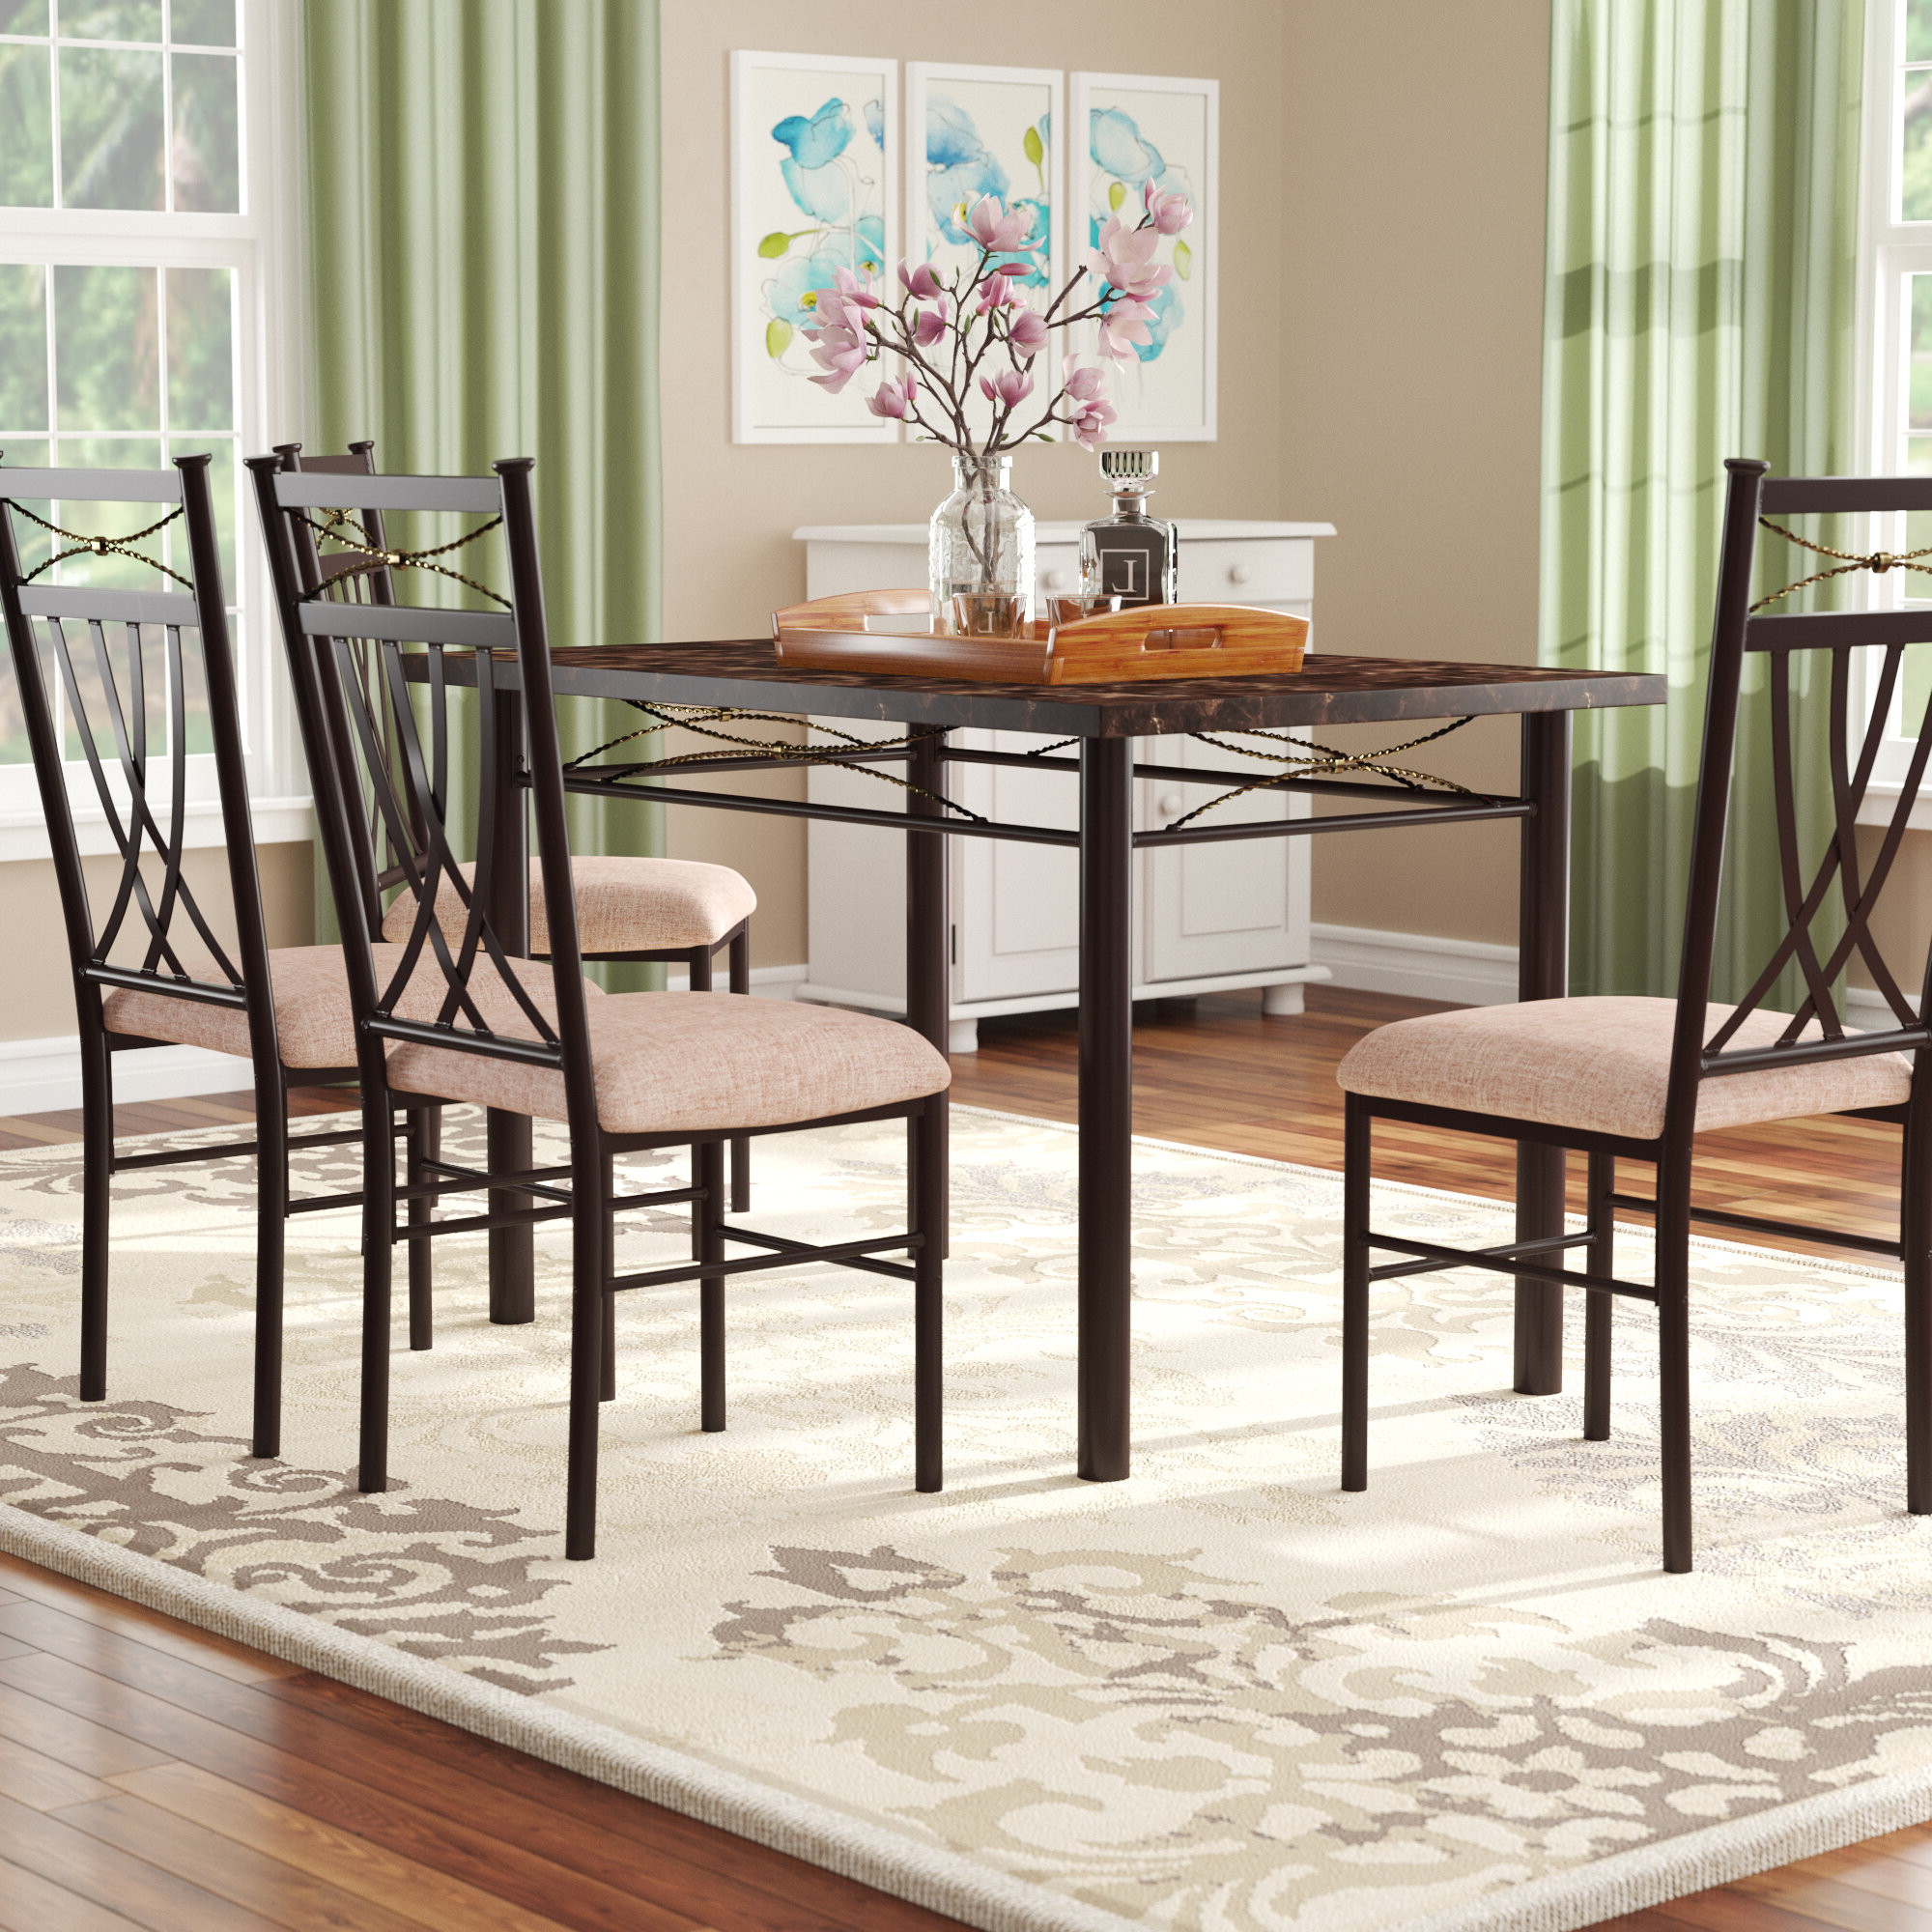 Well Liked Red Barrel Studio Branden 5 Piece Dining Set & Reviews (View 25 of 25)